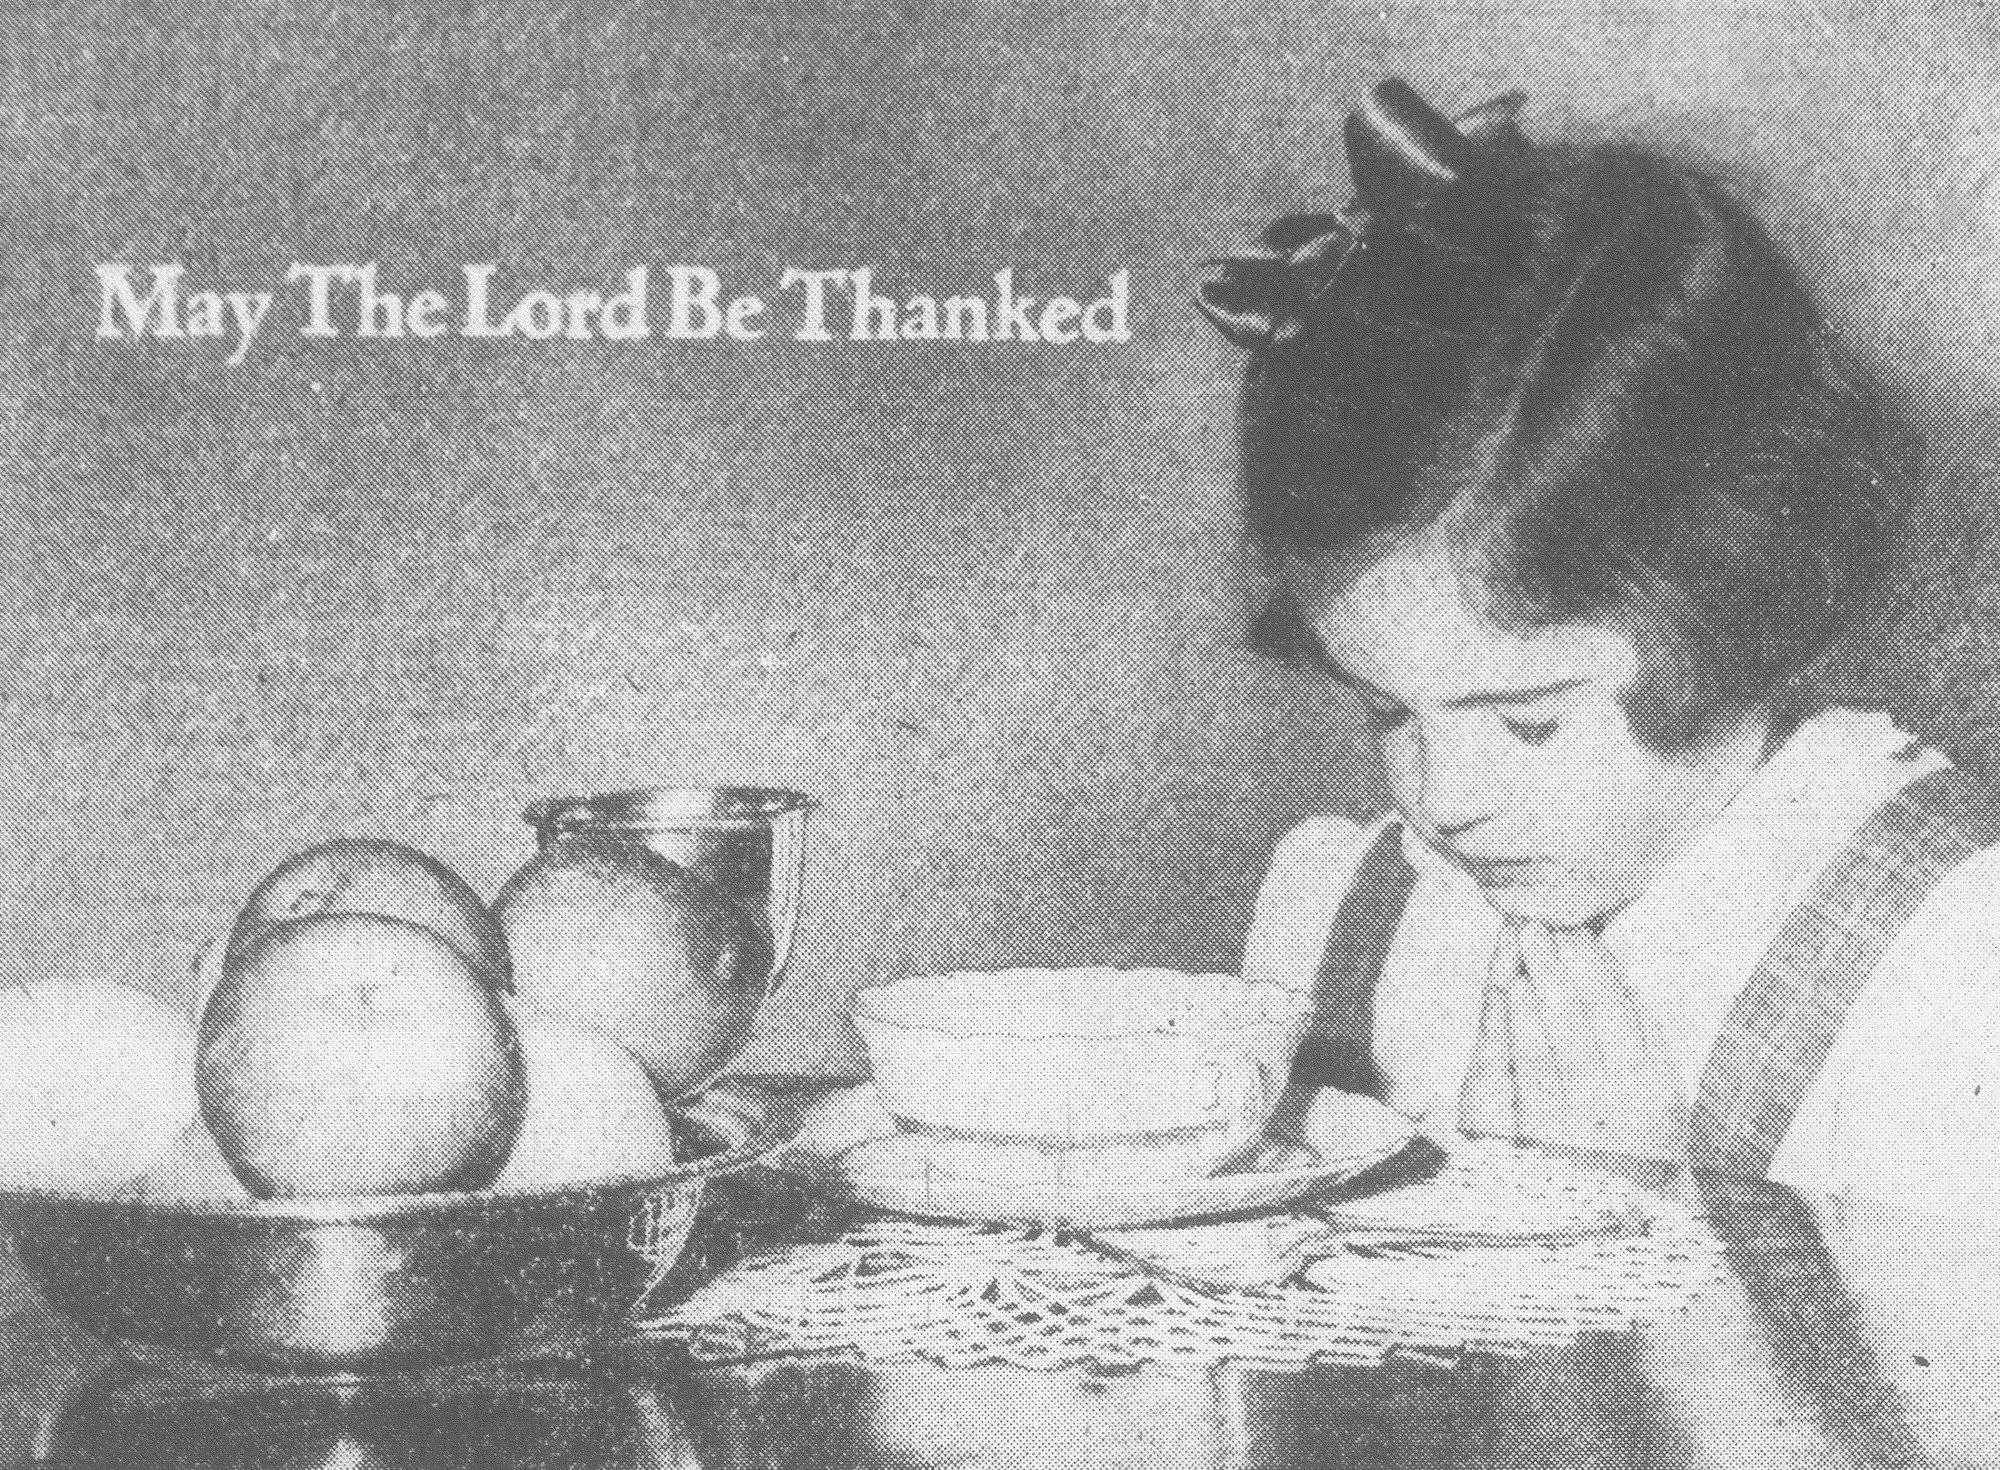 A Sumter girl gives her thanks during a Thanksgiving meal in 1951.